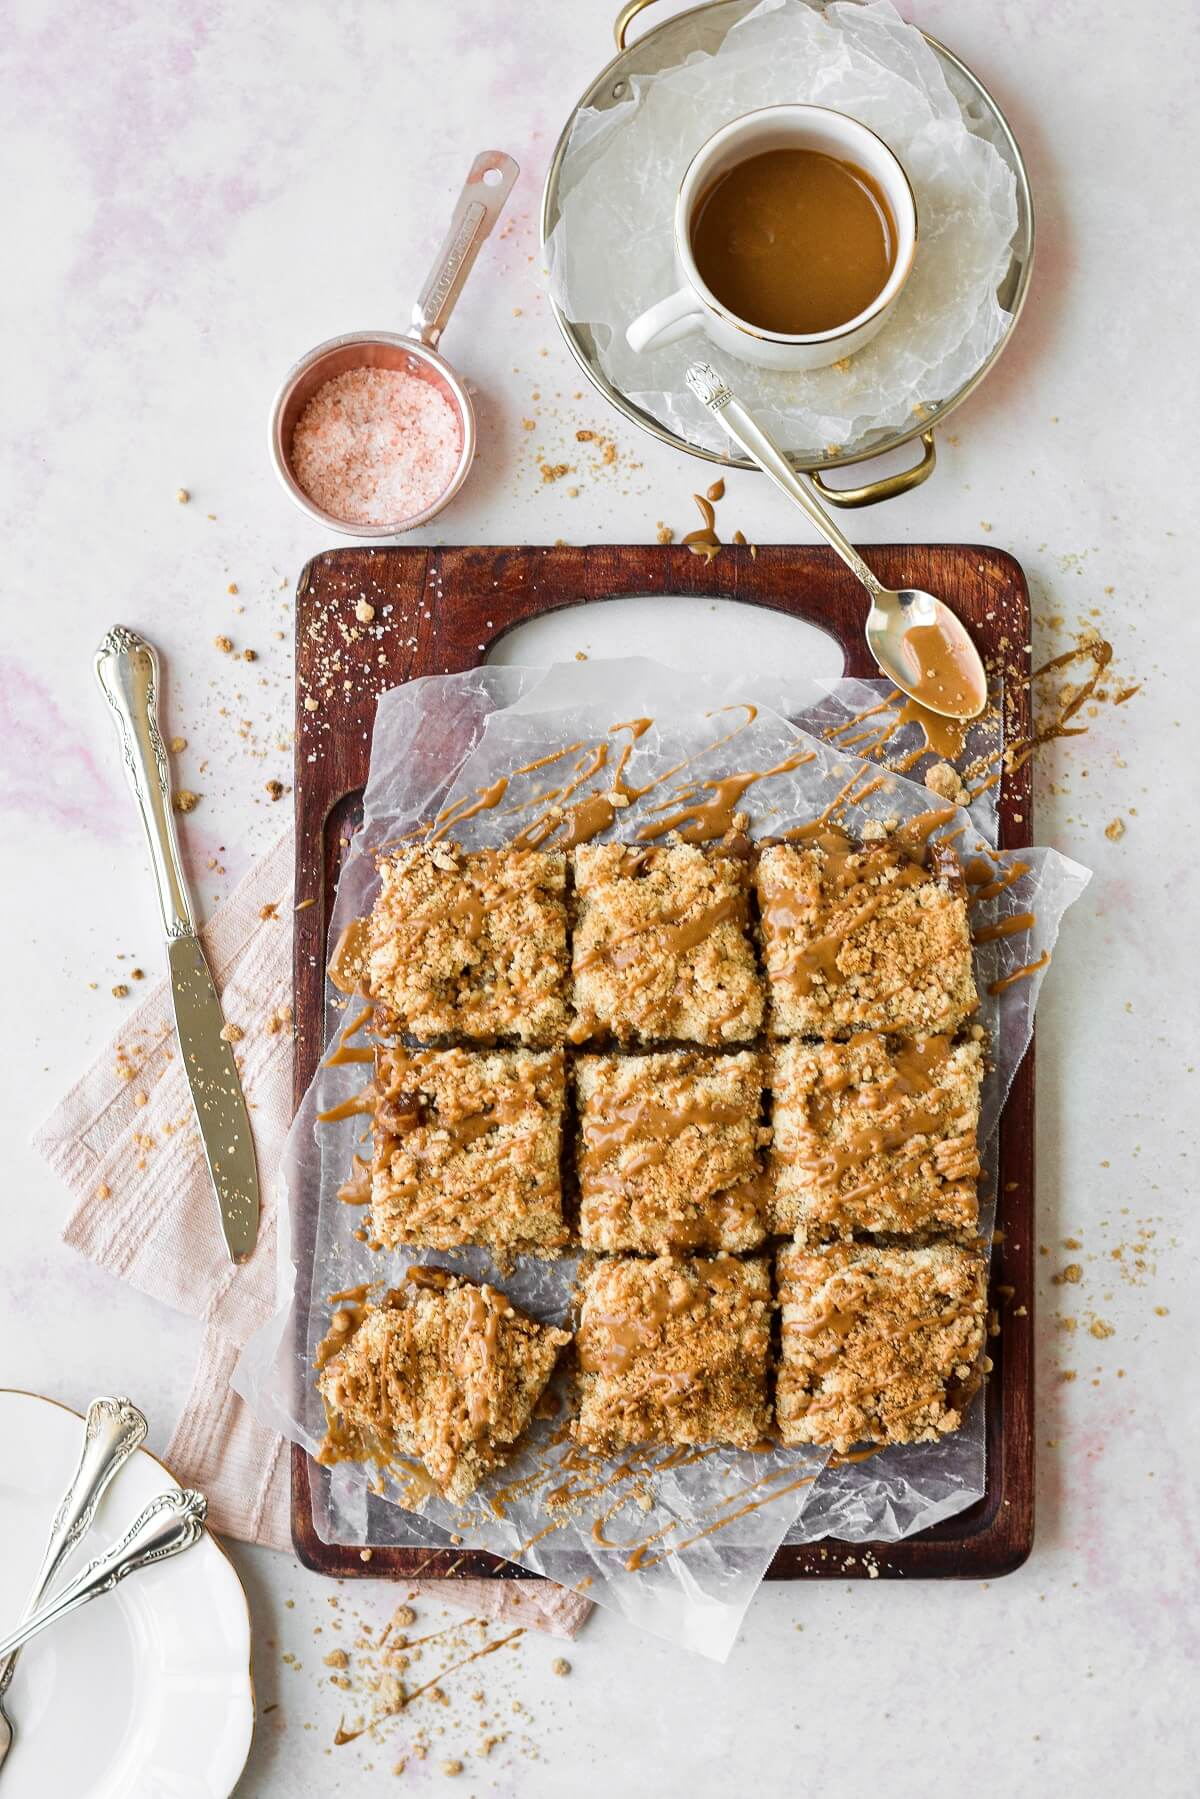 Apple crumb bars on a wooden cutting board, drizzled with maple icing.